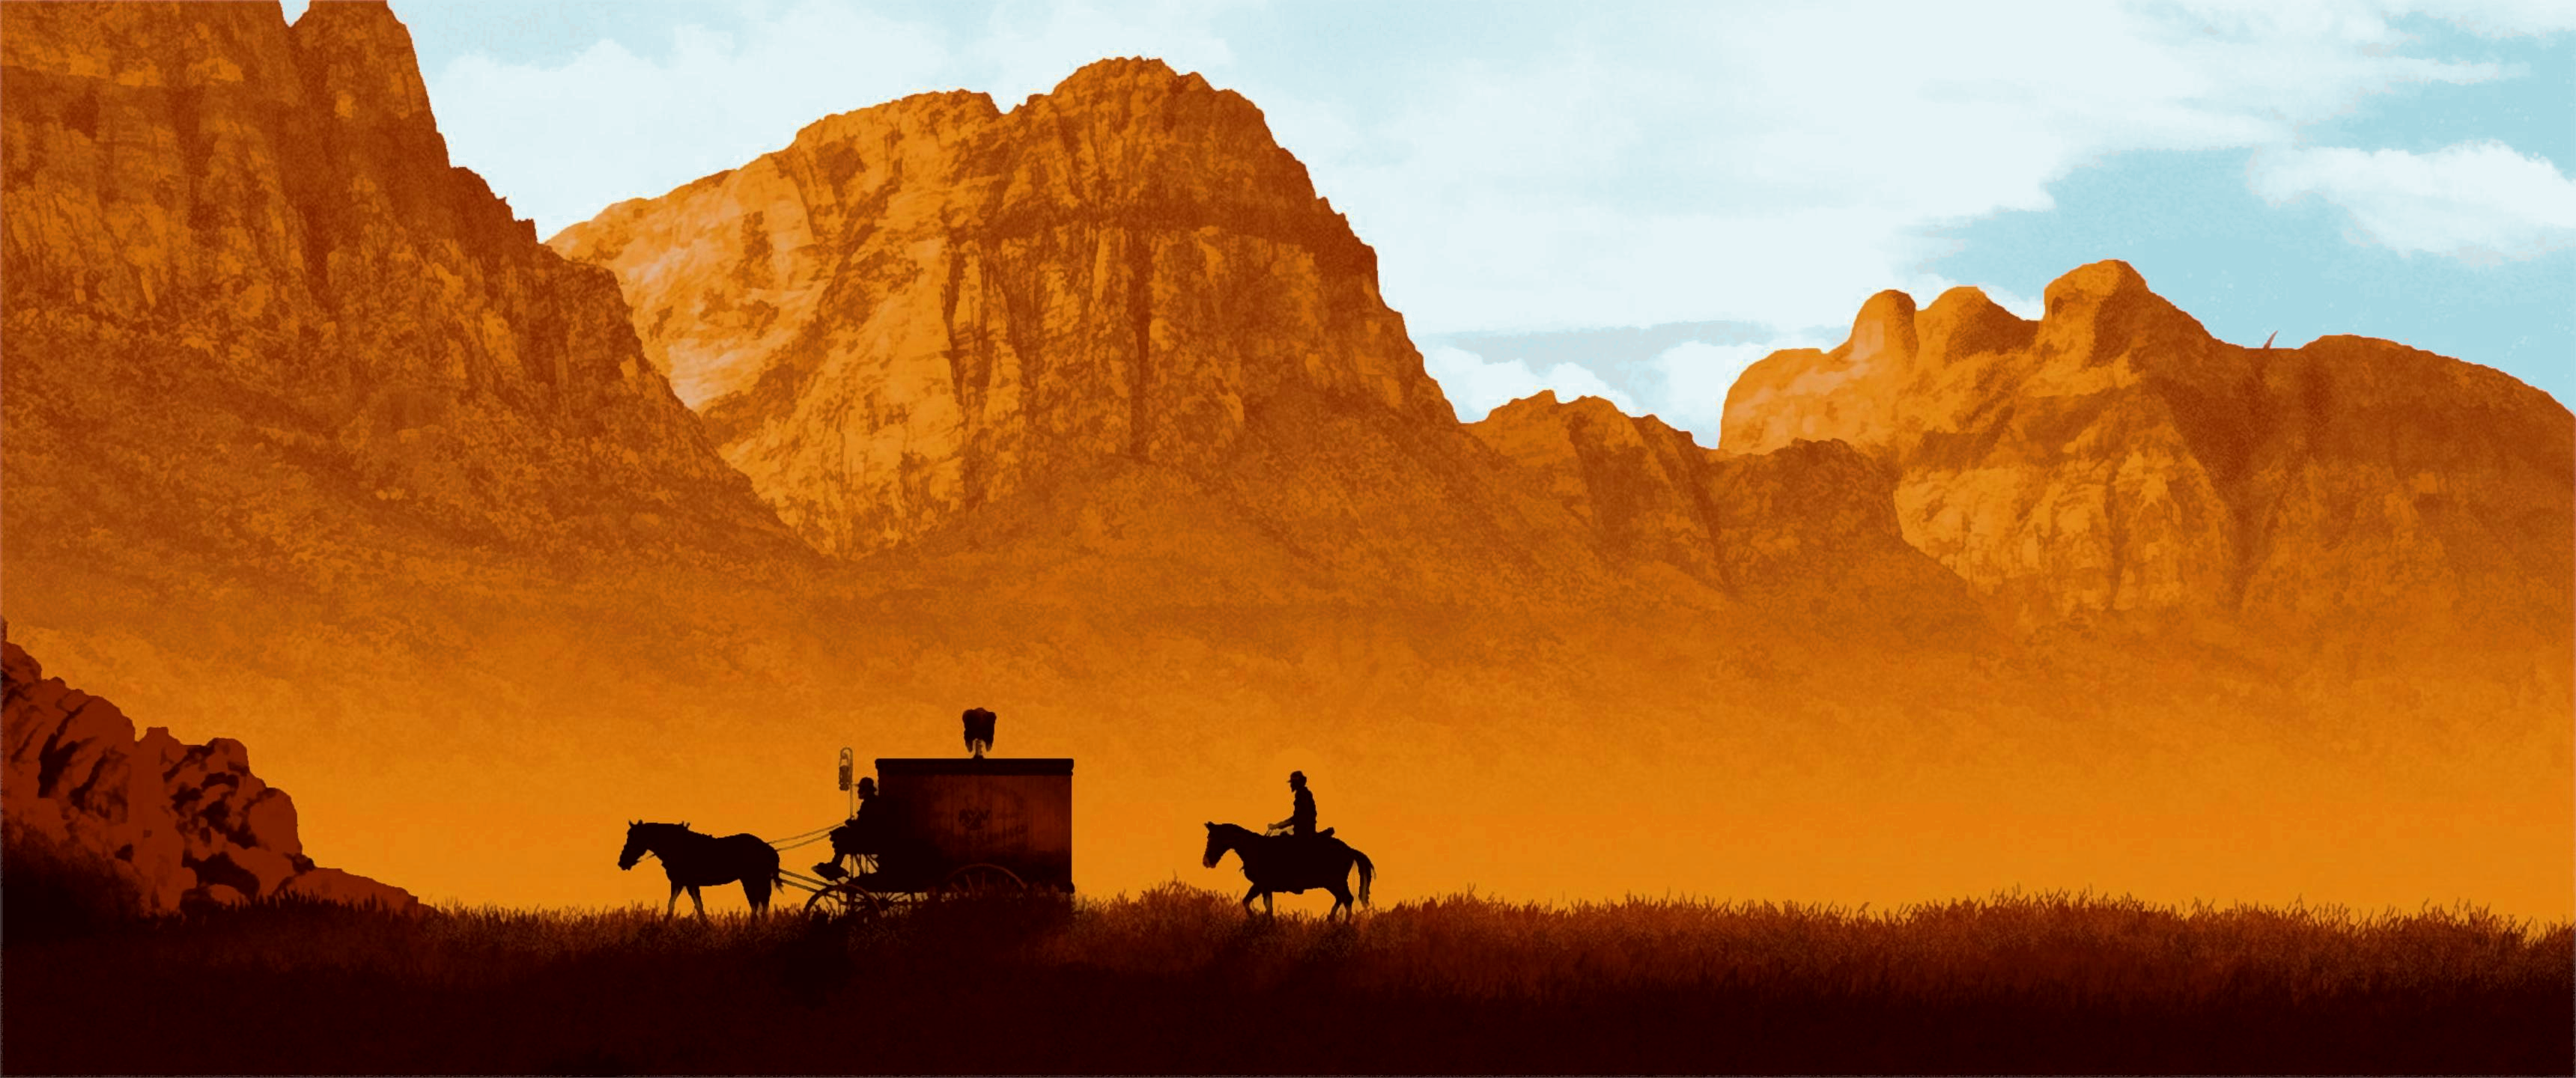 [50] Django Unchained [3440x1440] Music IndieArtist Chicago 3440x1440